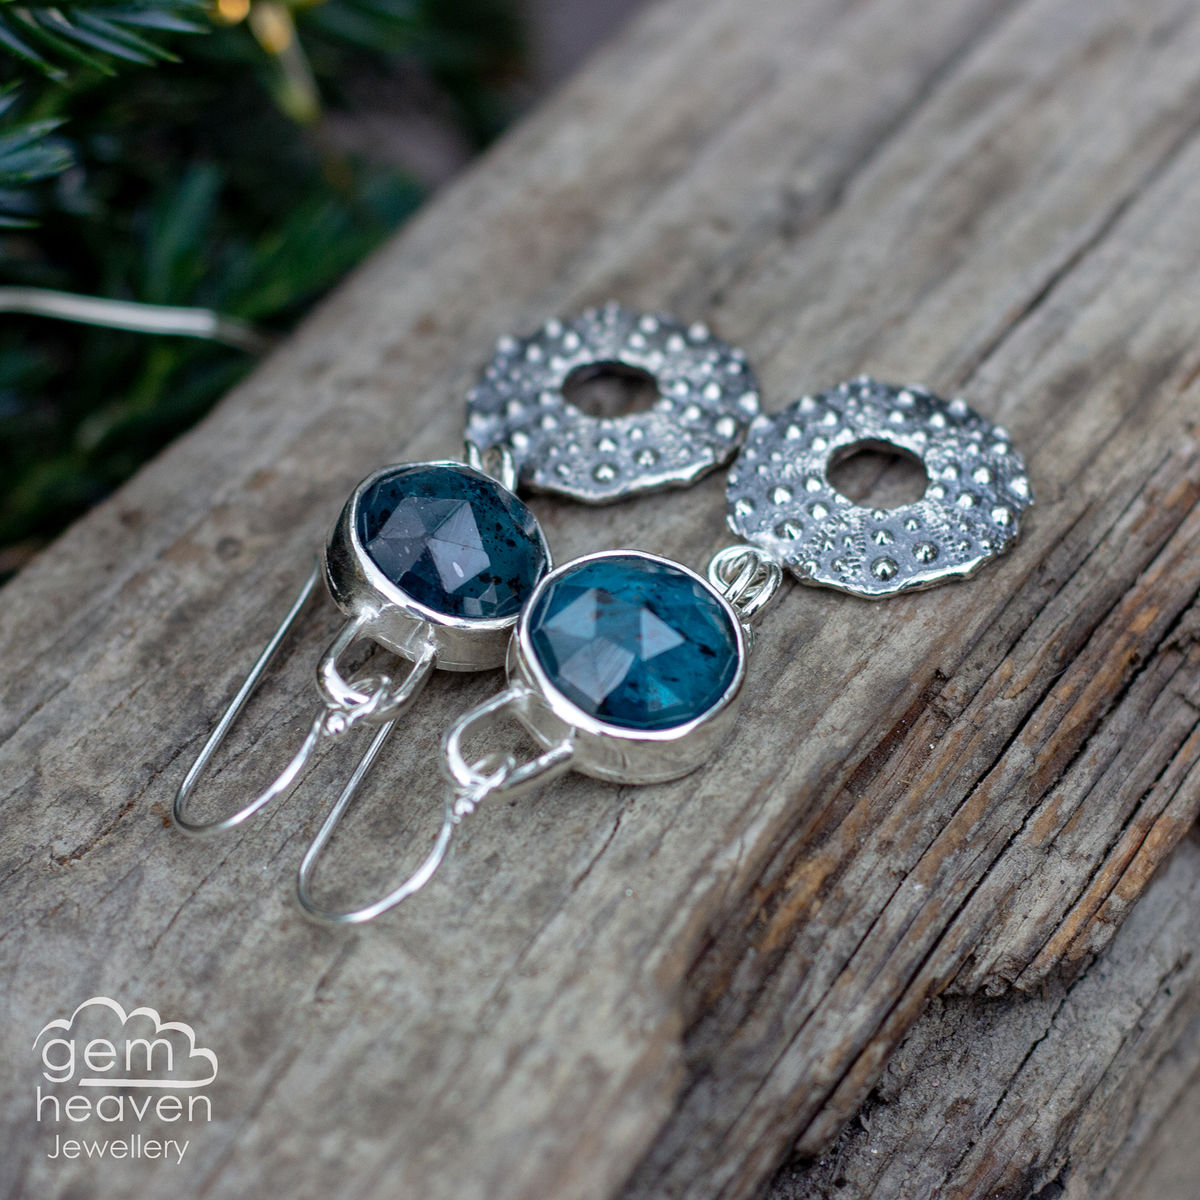 Zennor Earrings - product images  of